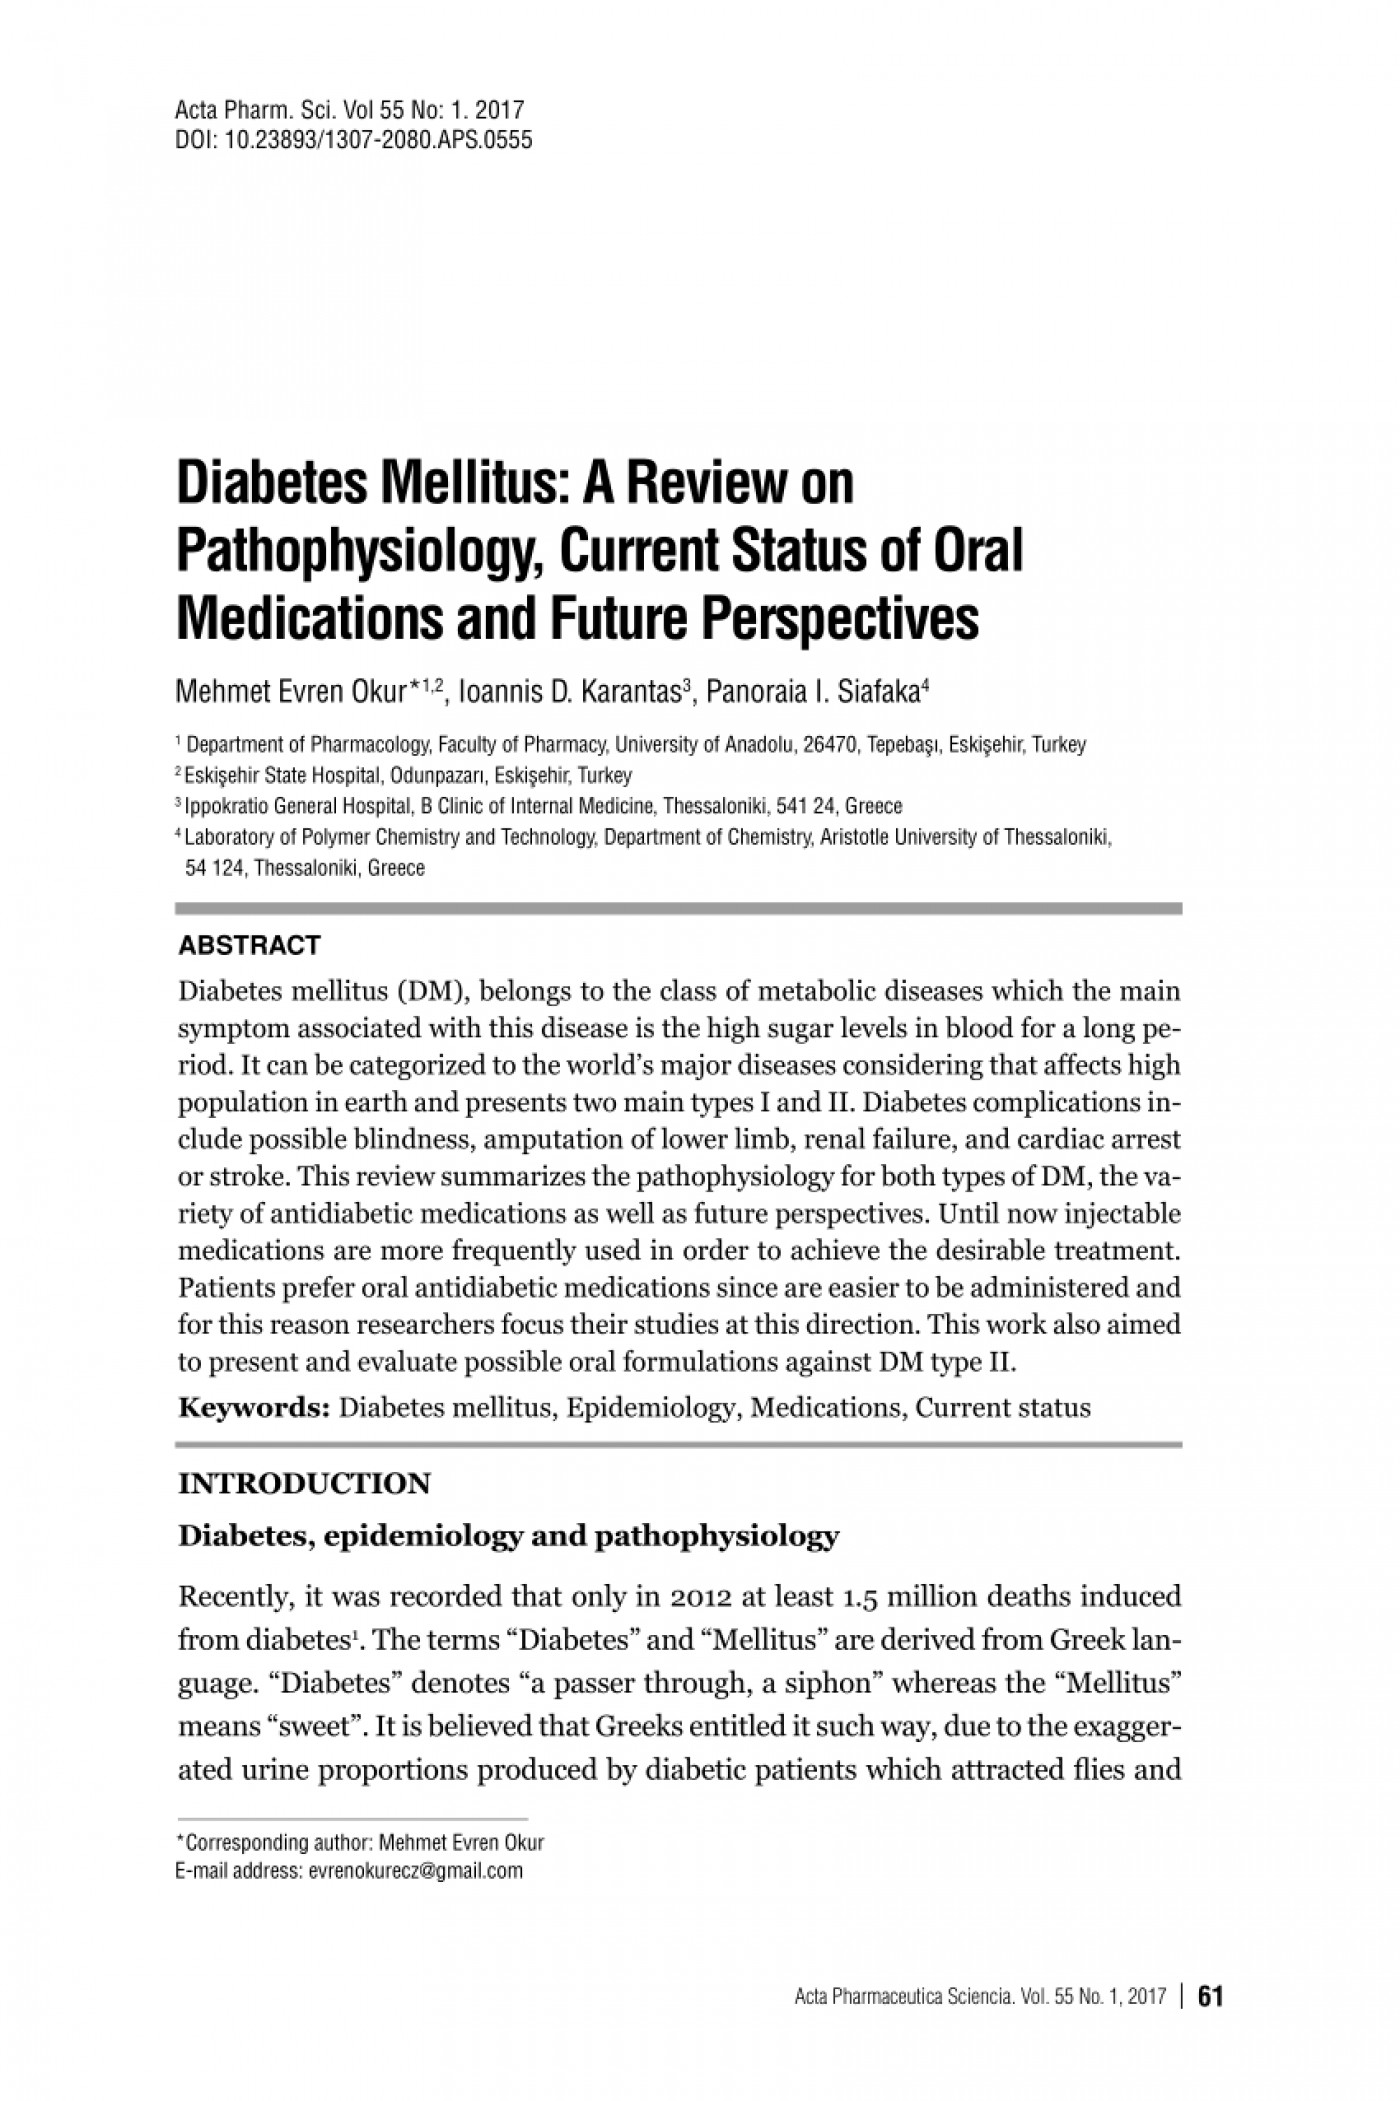 003 Diabetes Mellitus Researchs Pdf Largepreview Magnificent Research Papers 1400